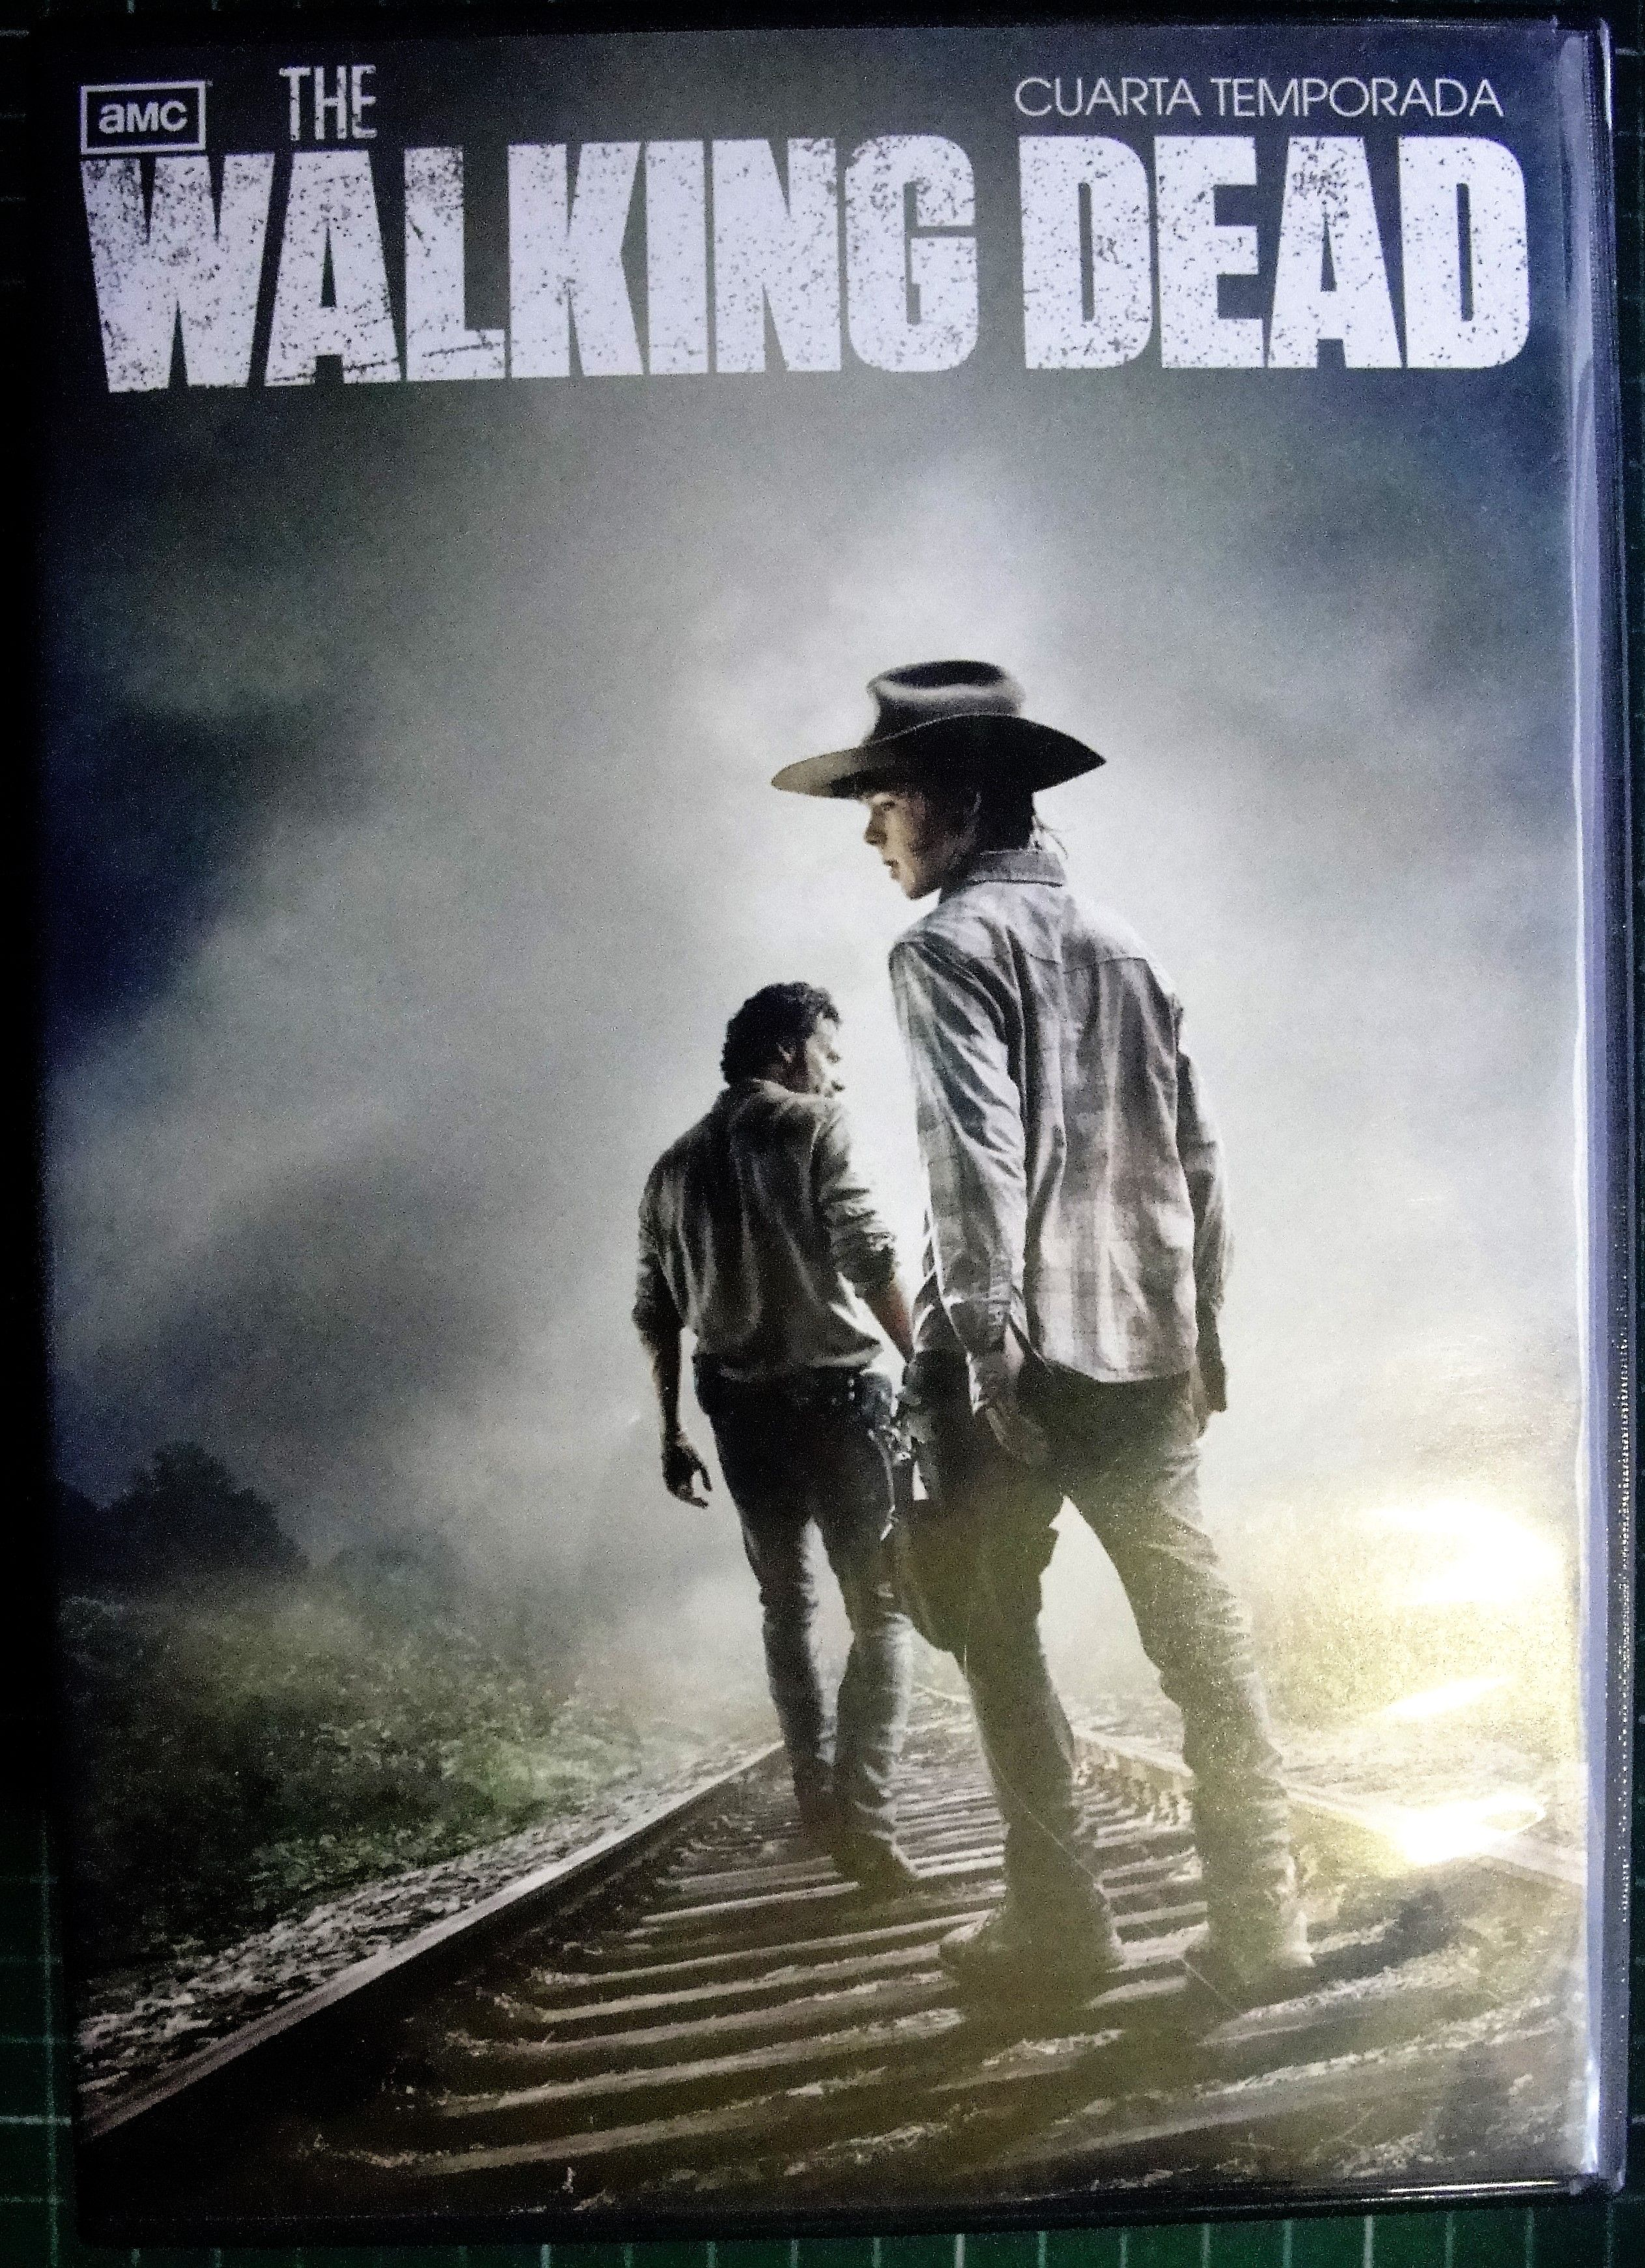 The Walking Dead 4/9 | Películas en casa | Pinterest